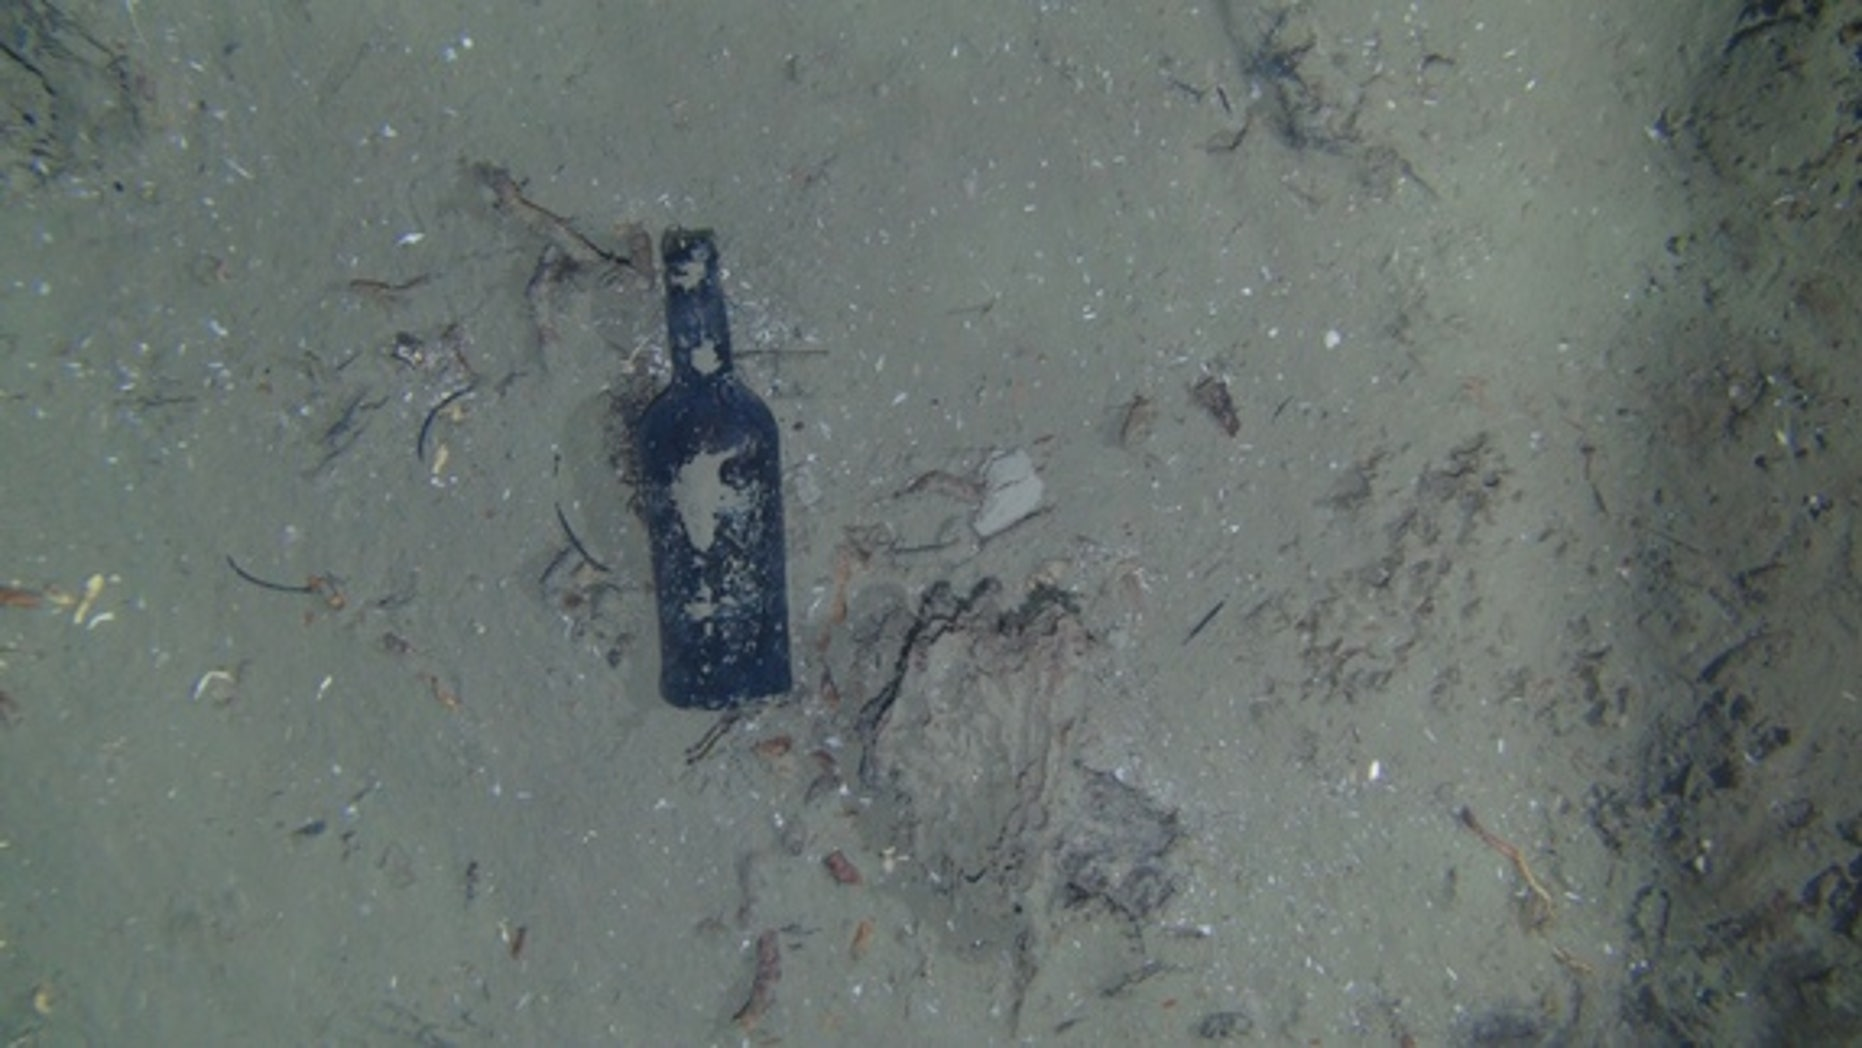 One of nine glass bottles observed at the site of the centuries-old shipwreck off the North Carolina coast.